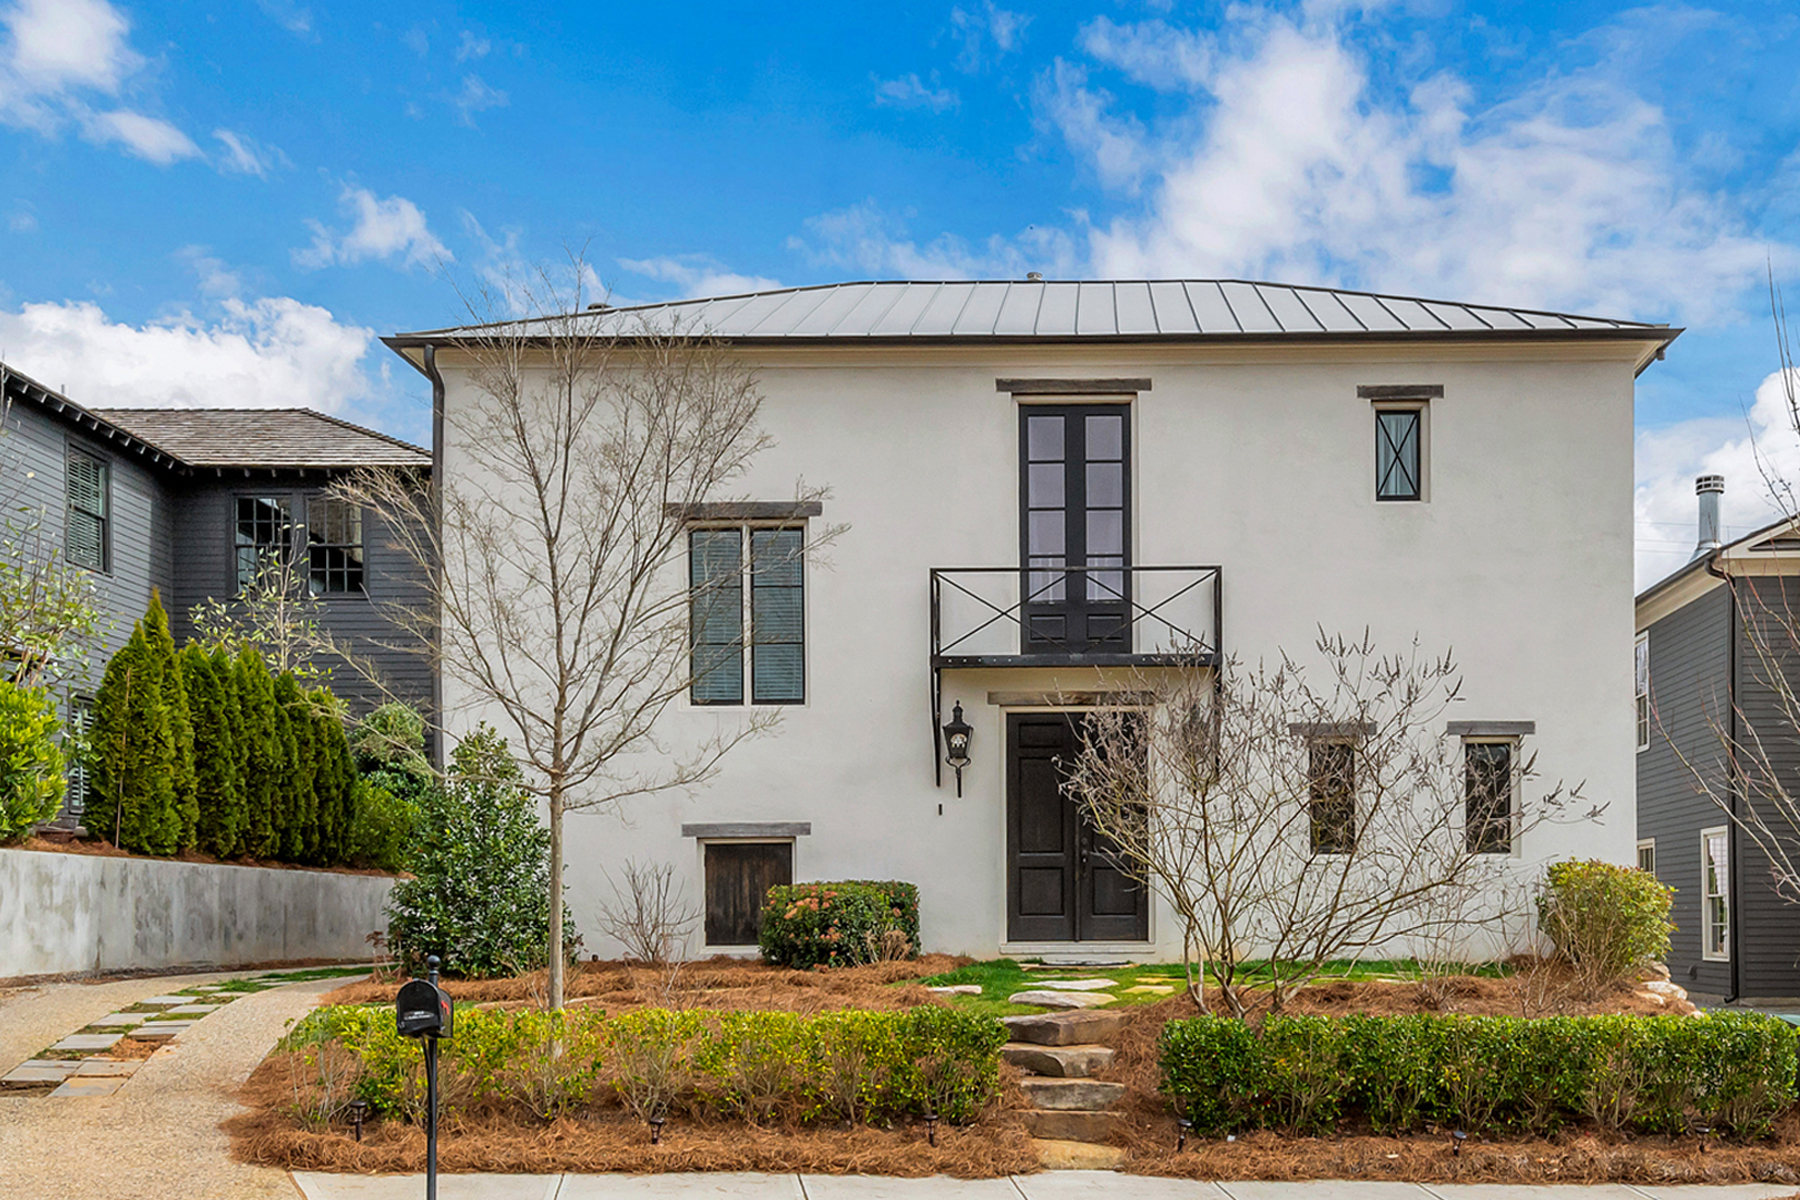 Single Family Homes for Sale at Custom European Inspired Home In Vickery 6915 Colfax Avenue Cumming, Georgia 30040 United States